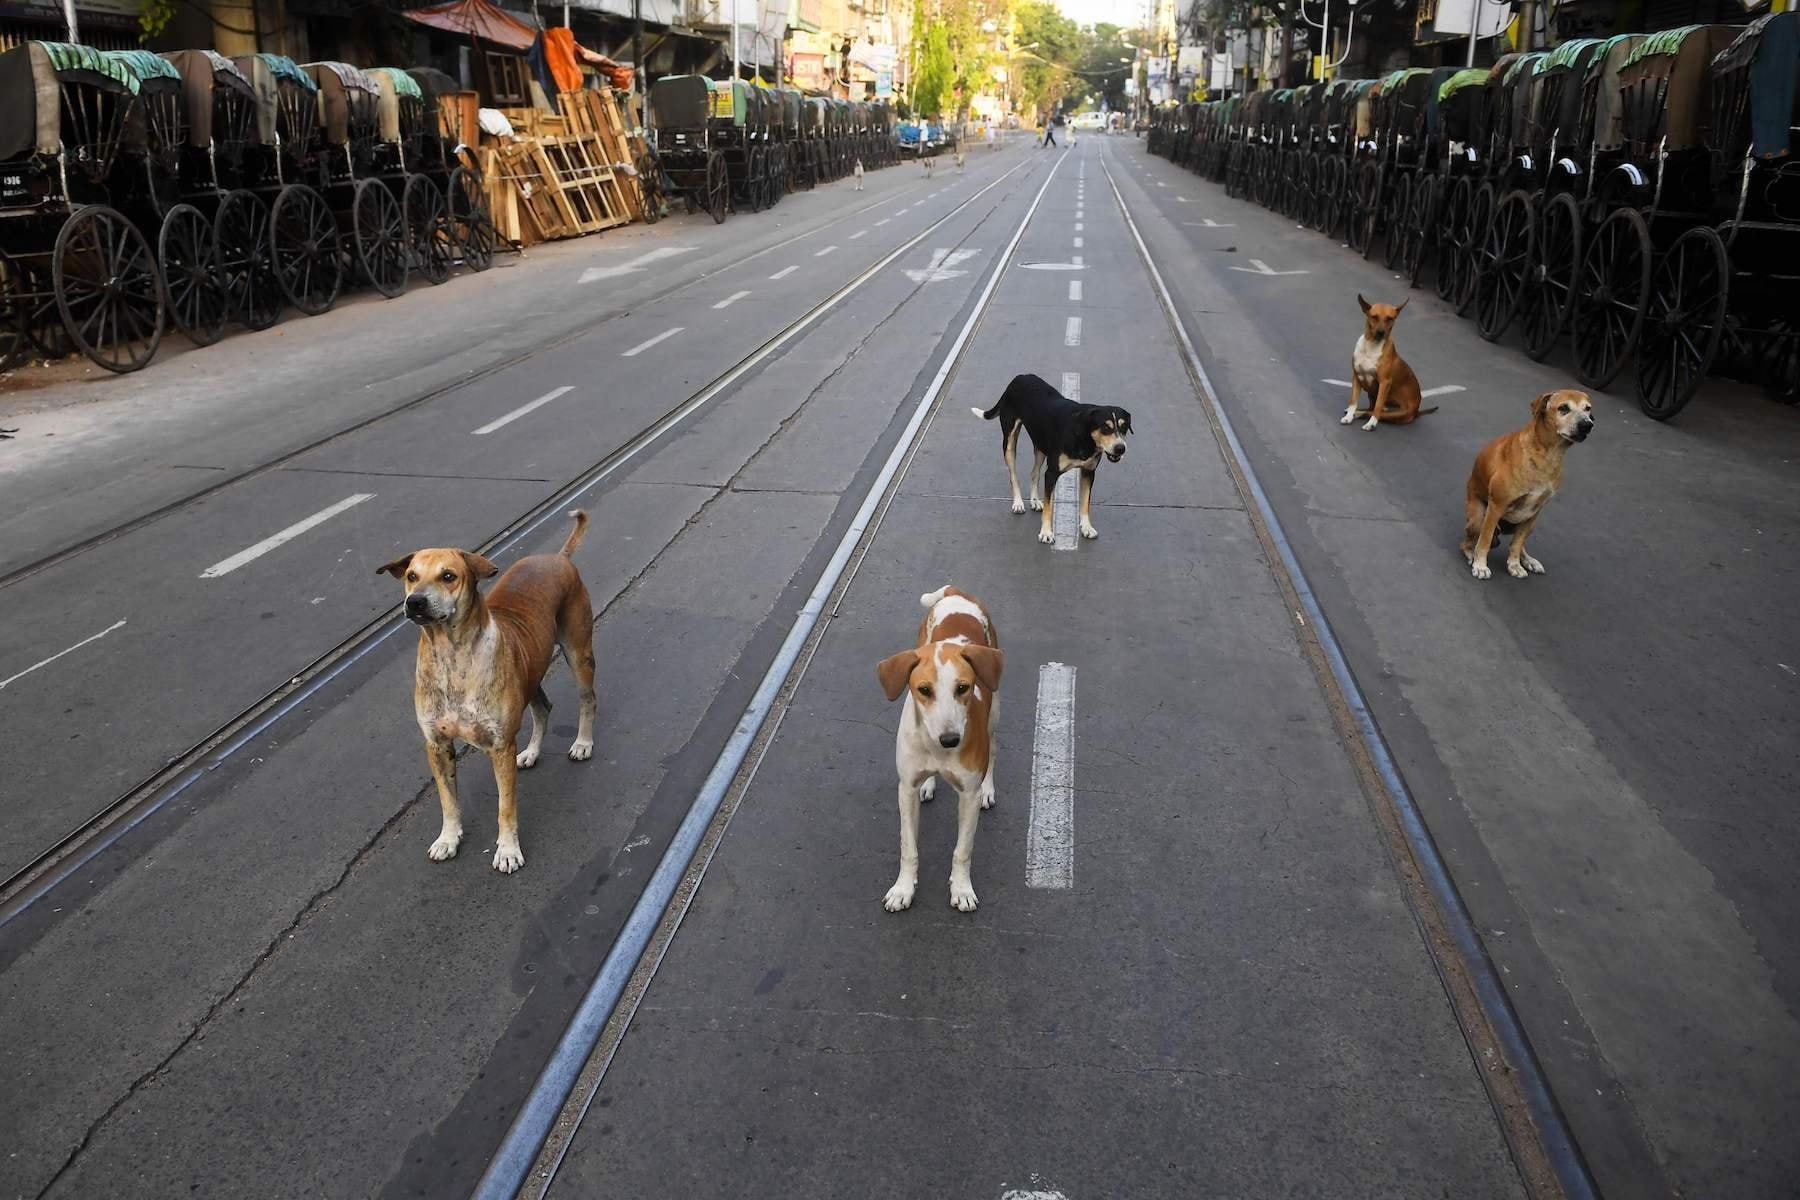 In this photograph taken on March 26, 2020, stray dogs gather on a deserted road during a government-imposed nationwide lockdown as a preventive measure against the COVID-19 coronavirus in Kolkata. - Hundreds of monkeys have taken over the streets around the Indian president's palace leading an animal offensive taking advantage of the deserted cities as the giant country remains in a pandemic lockdown. With India's 1.3 billion population and tens of millions of cars conspicuous by their absence, wildlife has moved to fill the void while also suffering from the coronavirus fallout. (Photo by Di